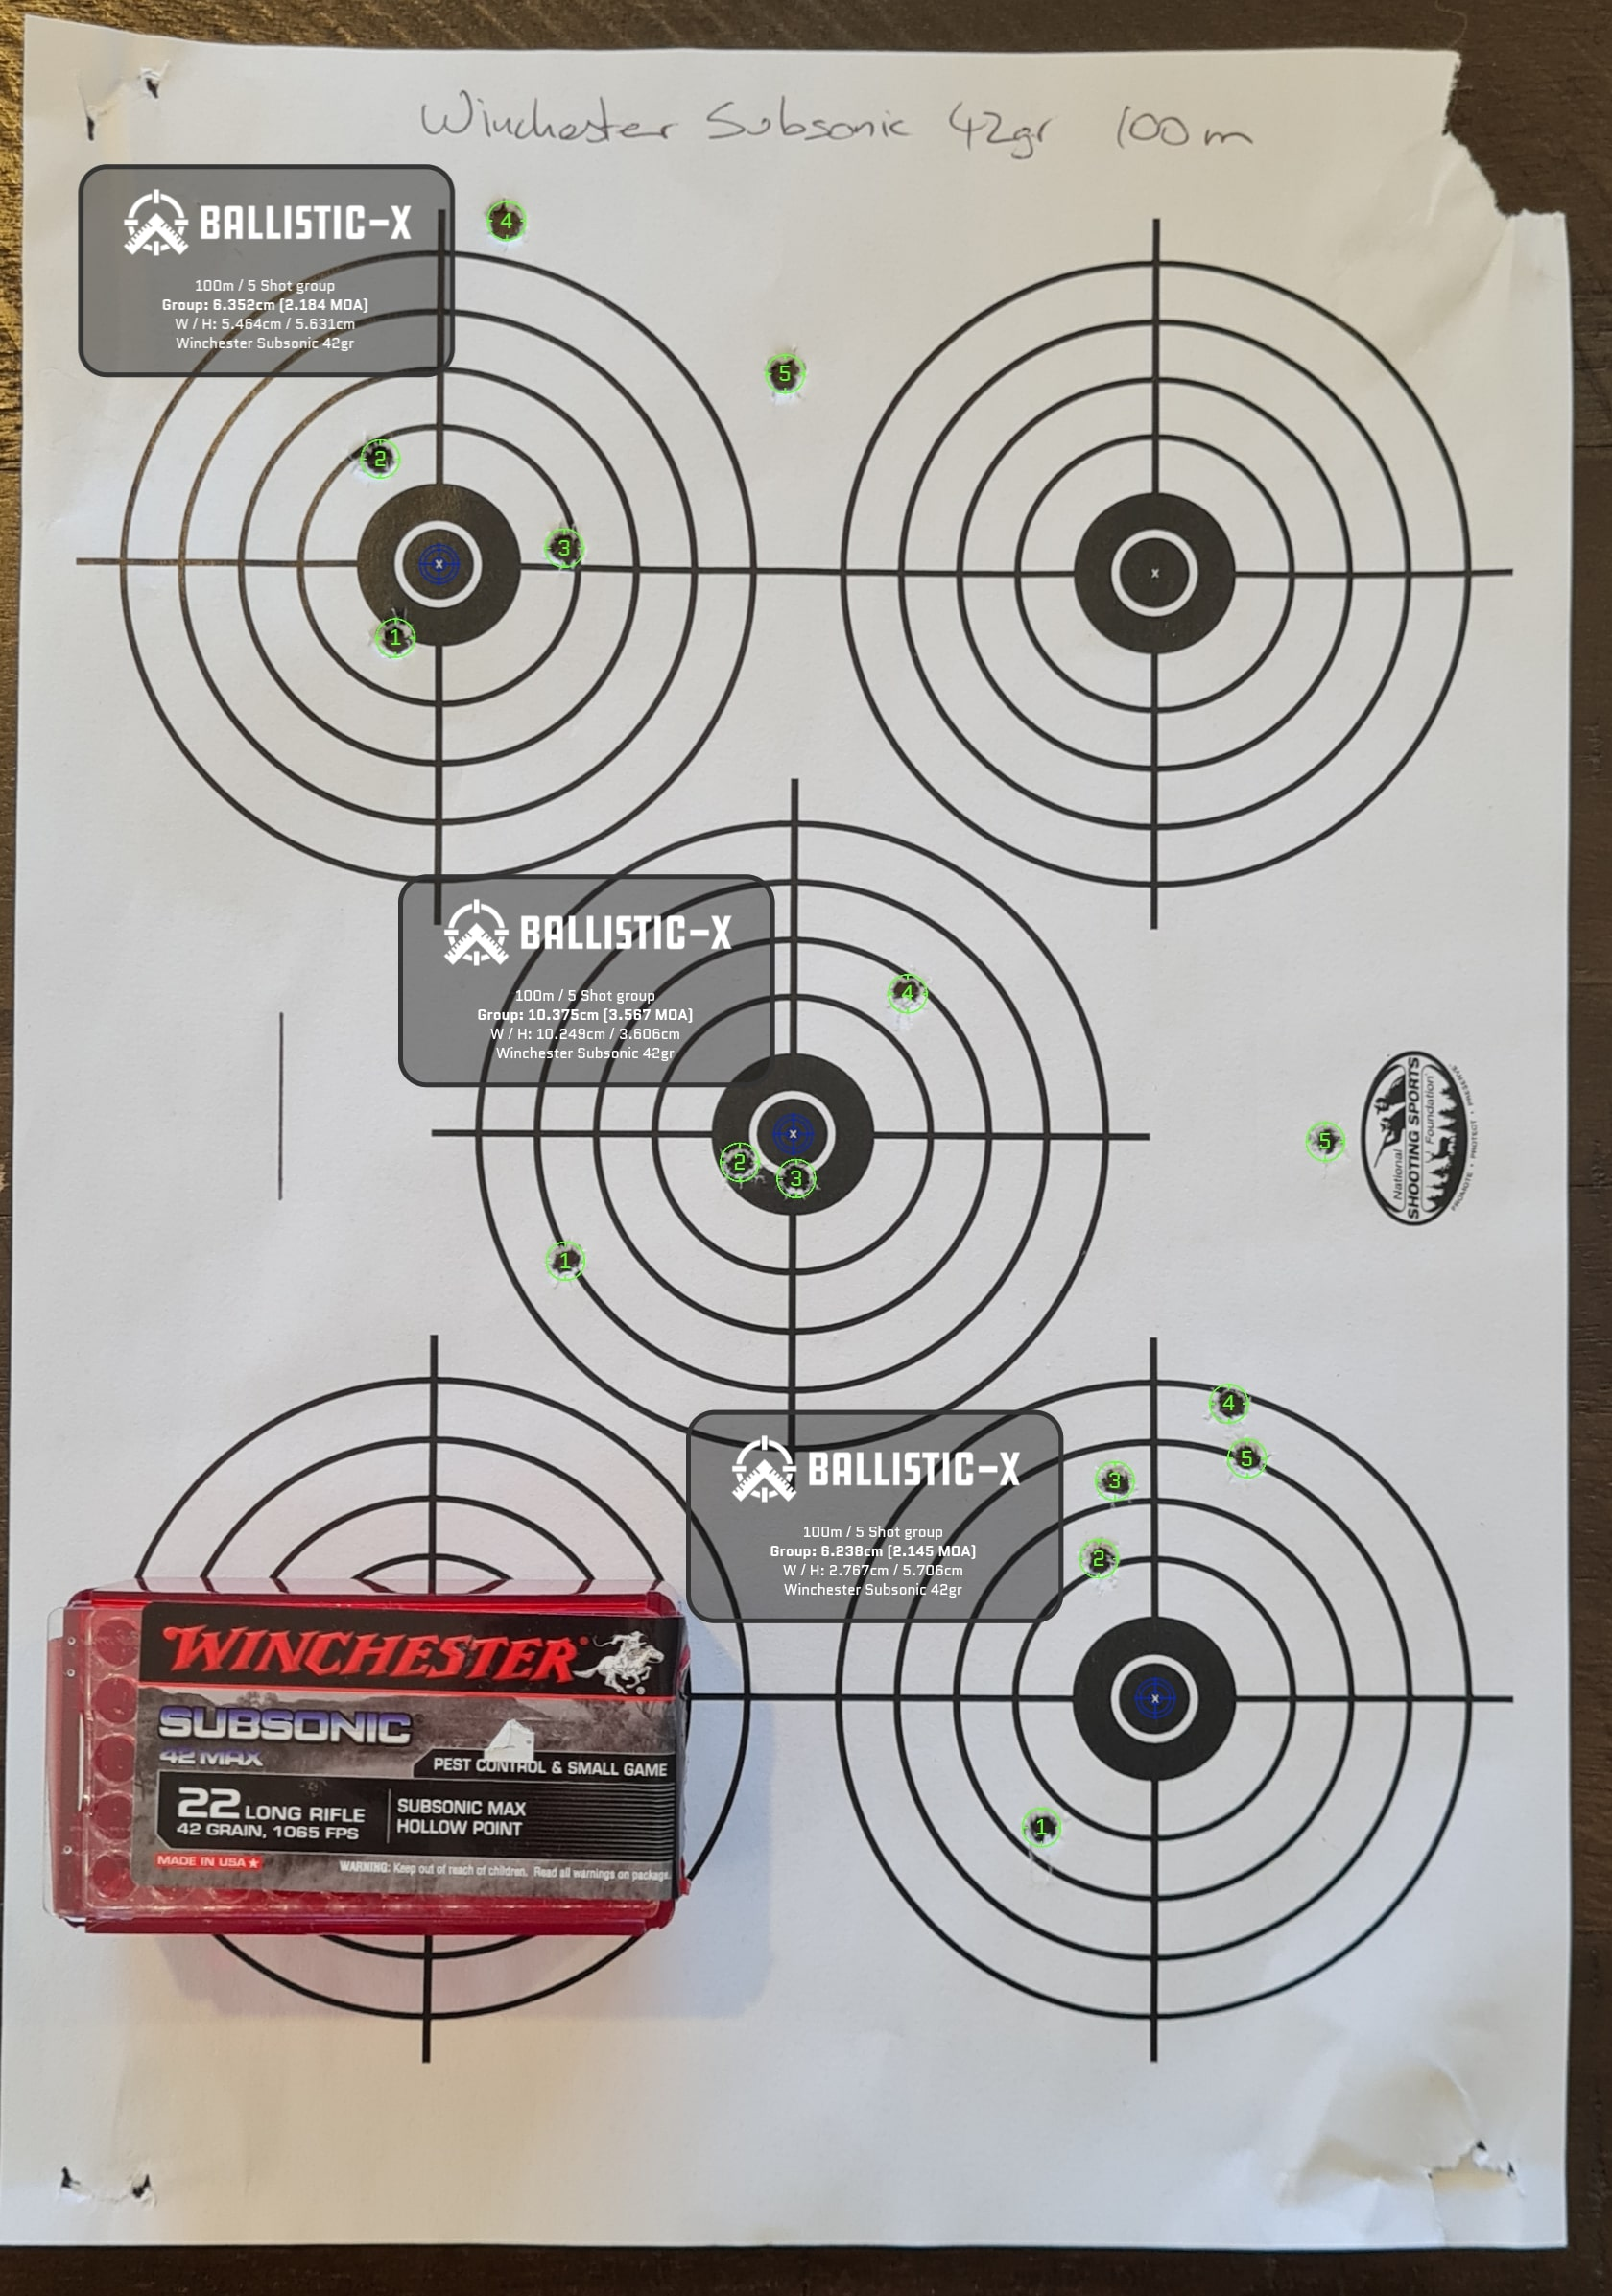 Name:  Winchester Subsonic 42gr 100m.jpg Views: 128 Size:  425.3 KB